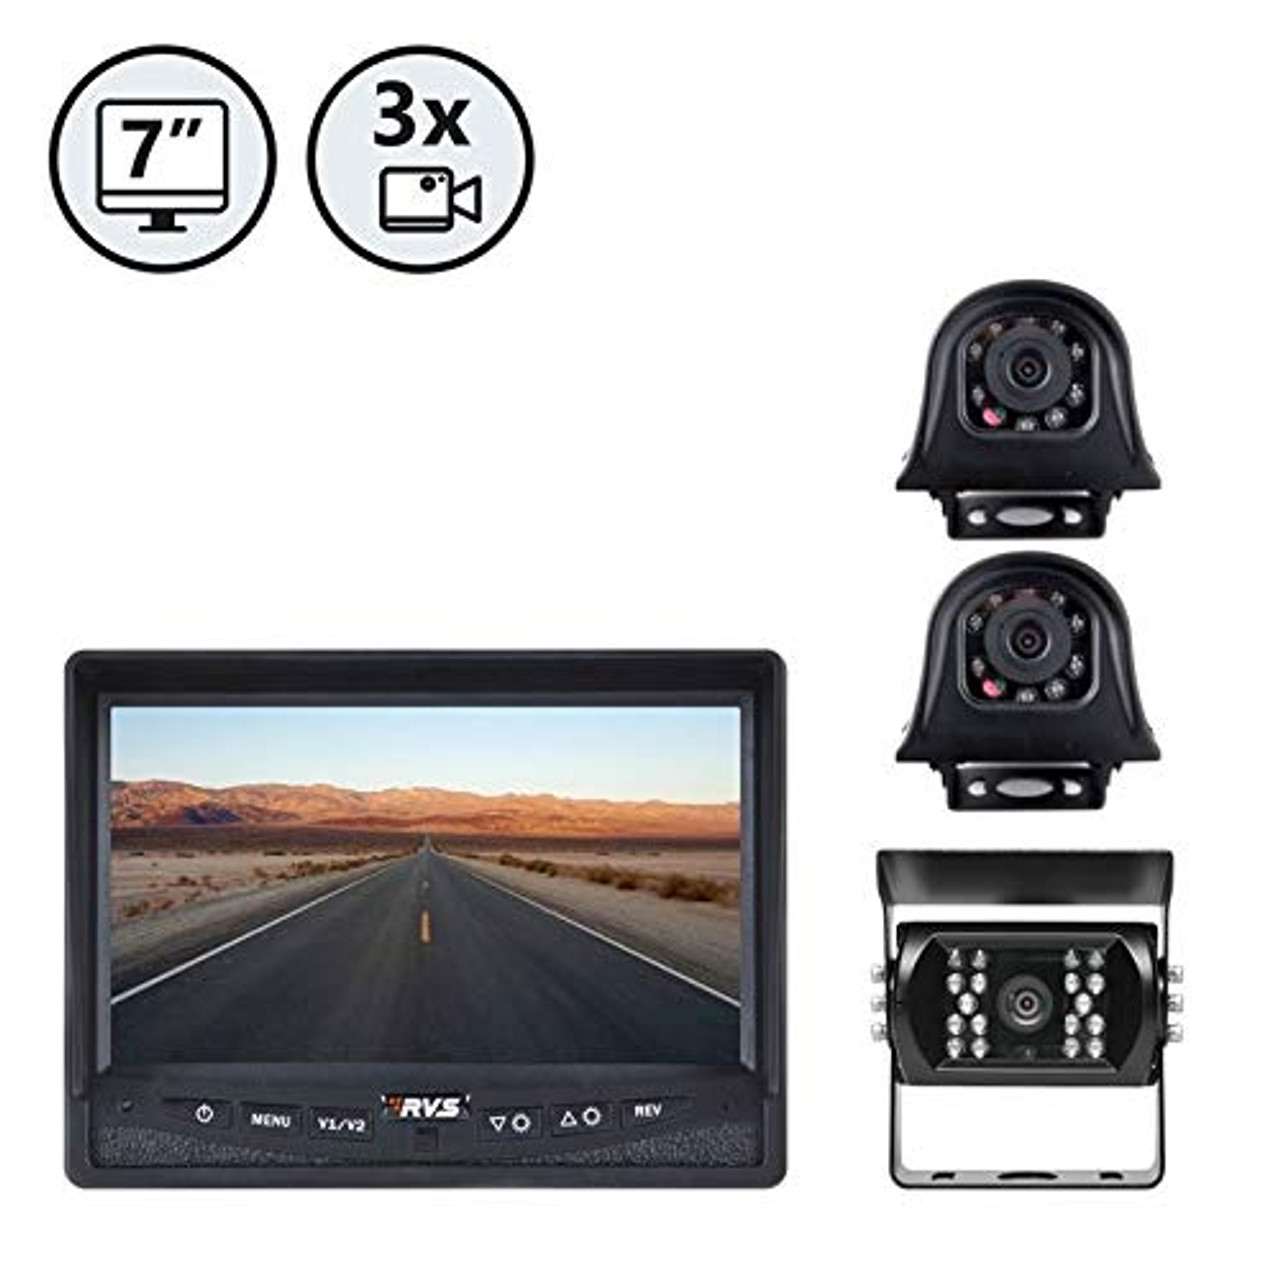 """7"""" Display, Backup Camera, Both Side Cameras, 66' Cable, 2 x 33' Cable 